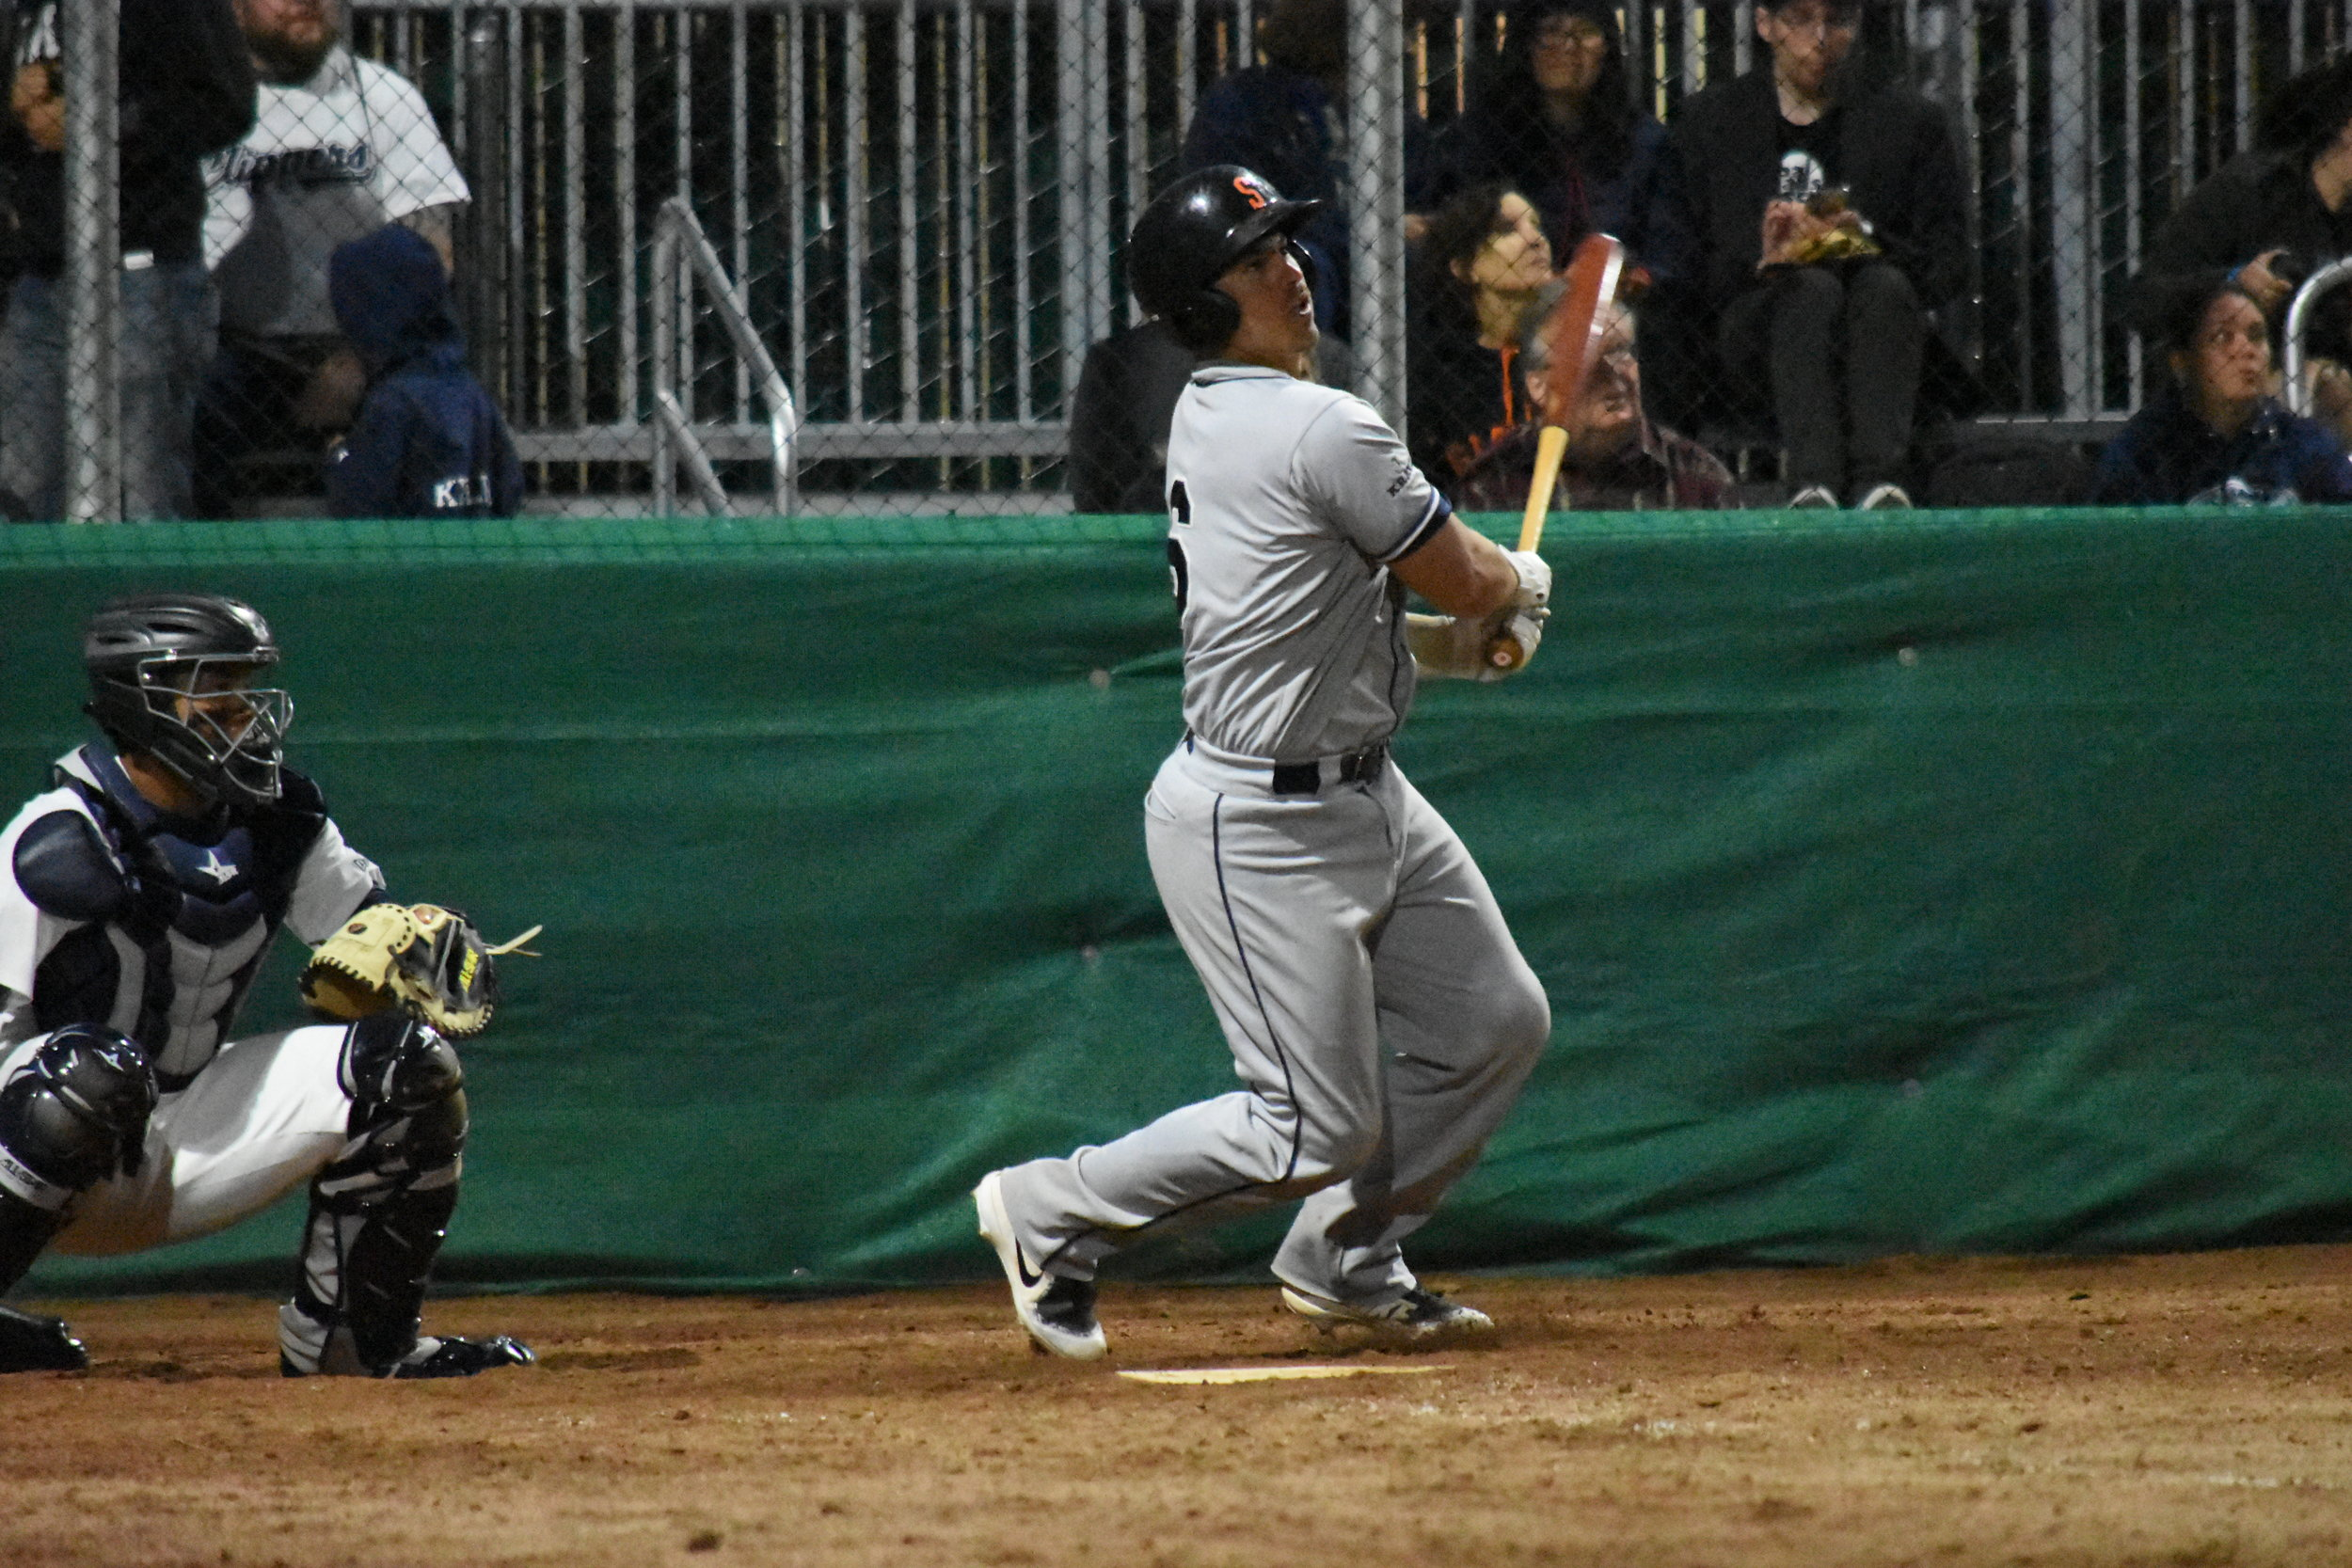 Daniel Comstock hit three home runs in the Sonoma Stompers two-game series against the Martinez Clippers in the former's inaugural games at Joe DiMaggio Field. (James W. Toy III / Sonoma Stompers)